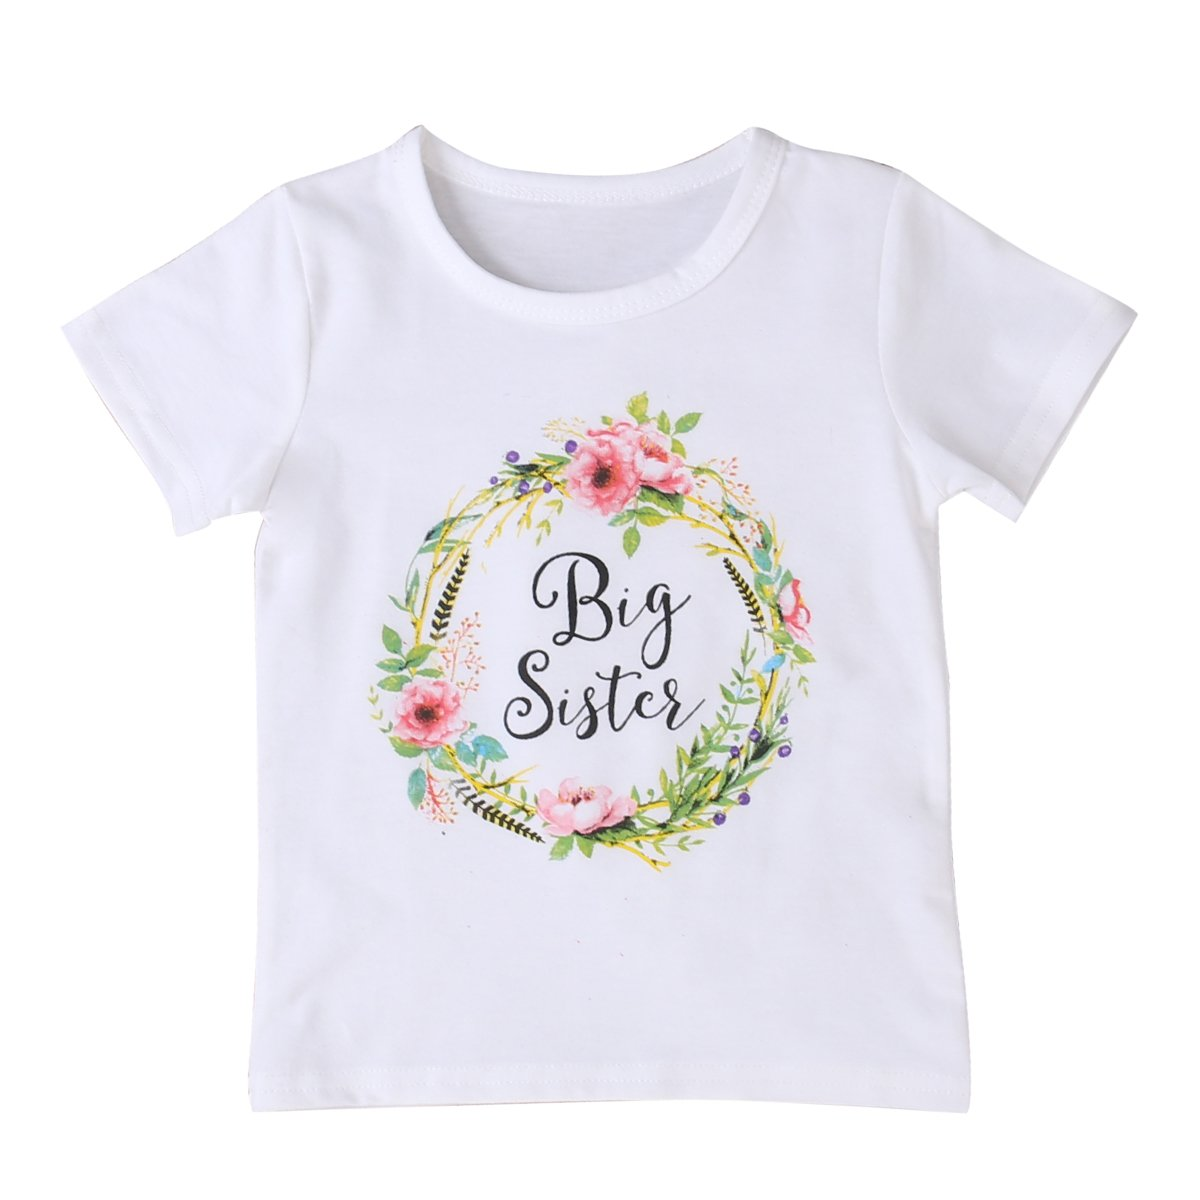 MA& BABY Newborn Baby Girls Romper Tops White Shirt Sisters Outfits Clothes Set Moore